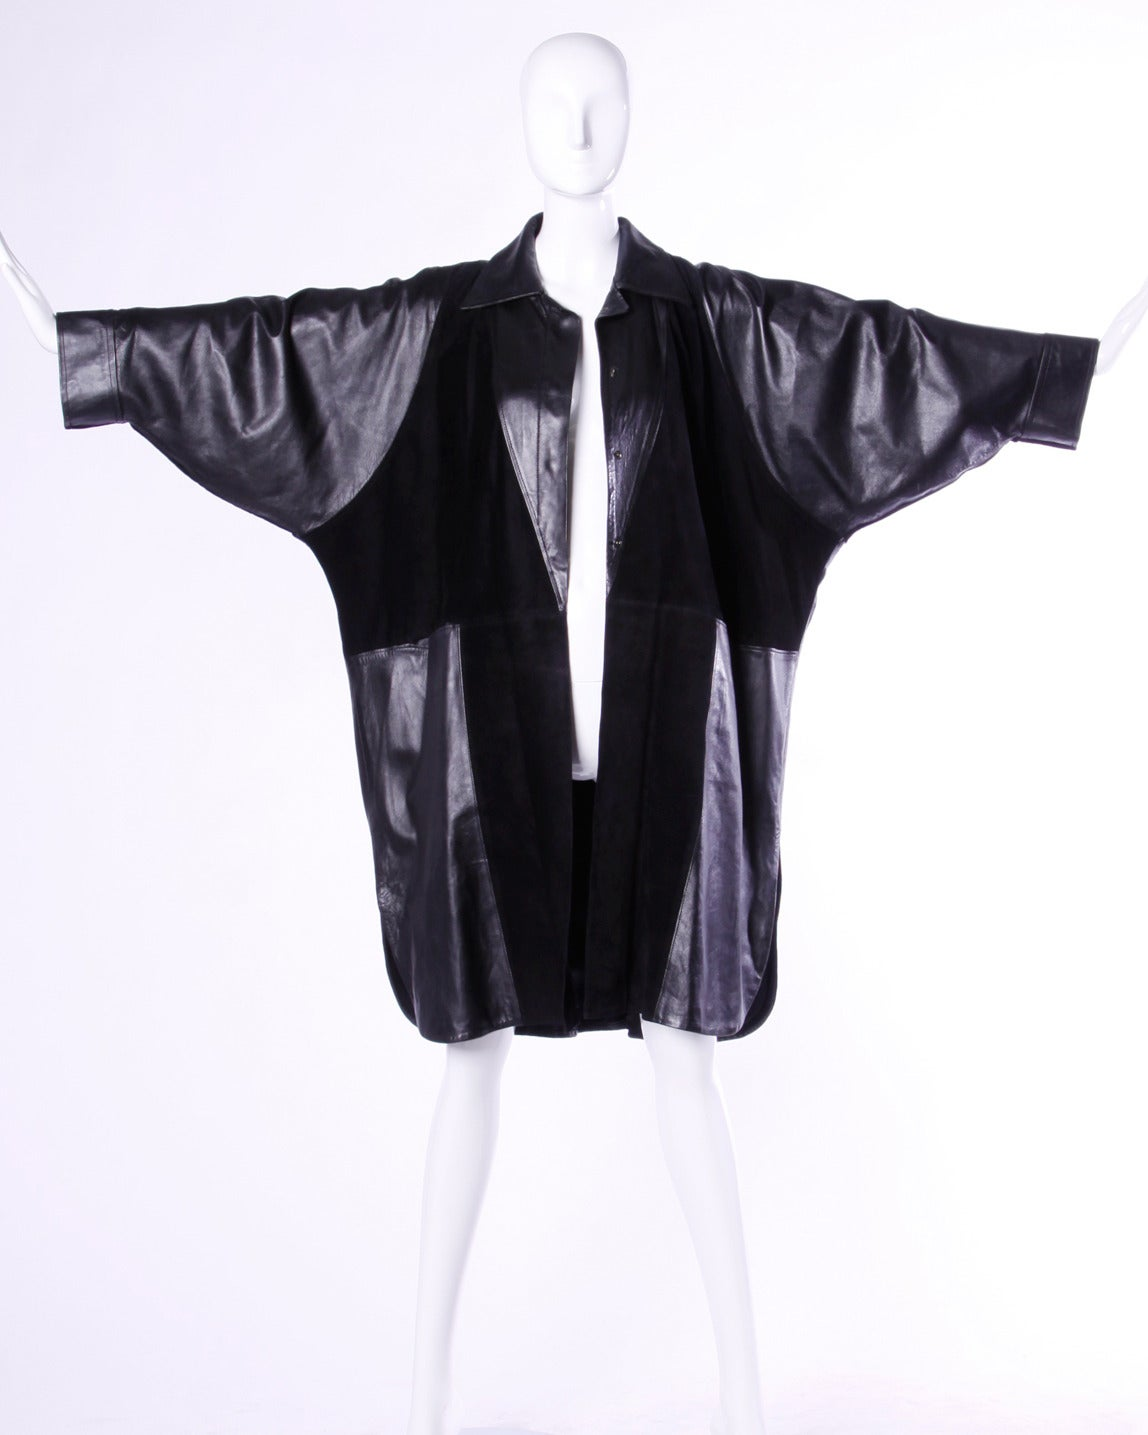 Jean Claude Jitrois Vintage 1980s 80s Black Leather Batwing or Cocoon Coat In Excellent Condition For Sale In Sparks, NV